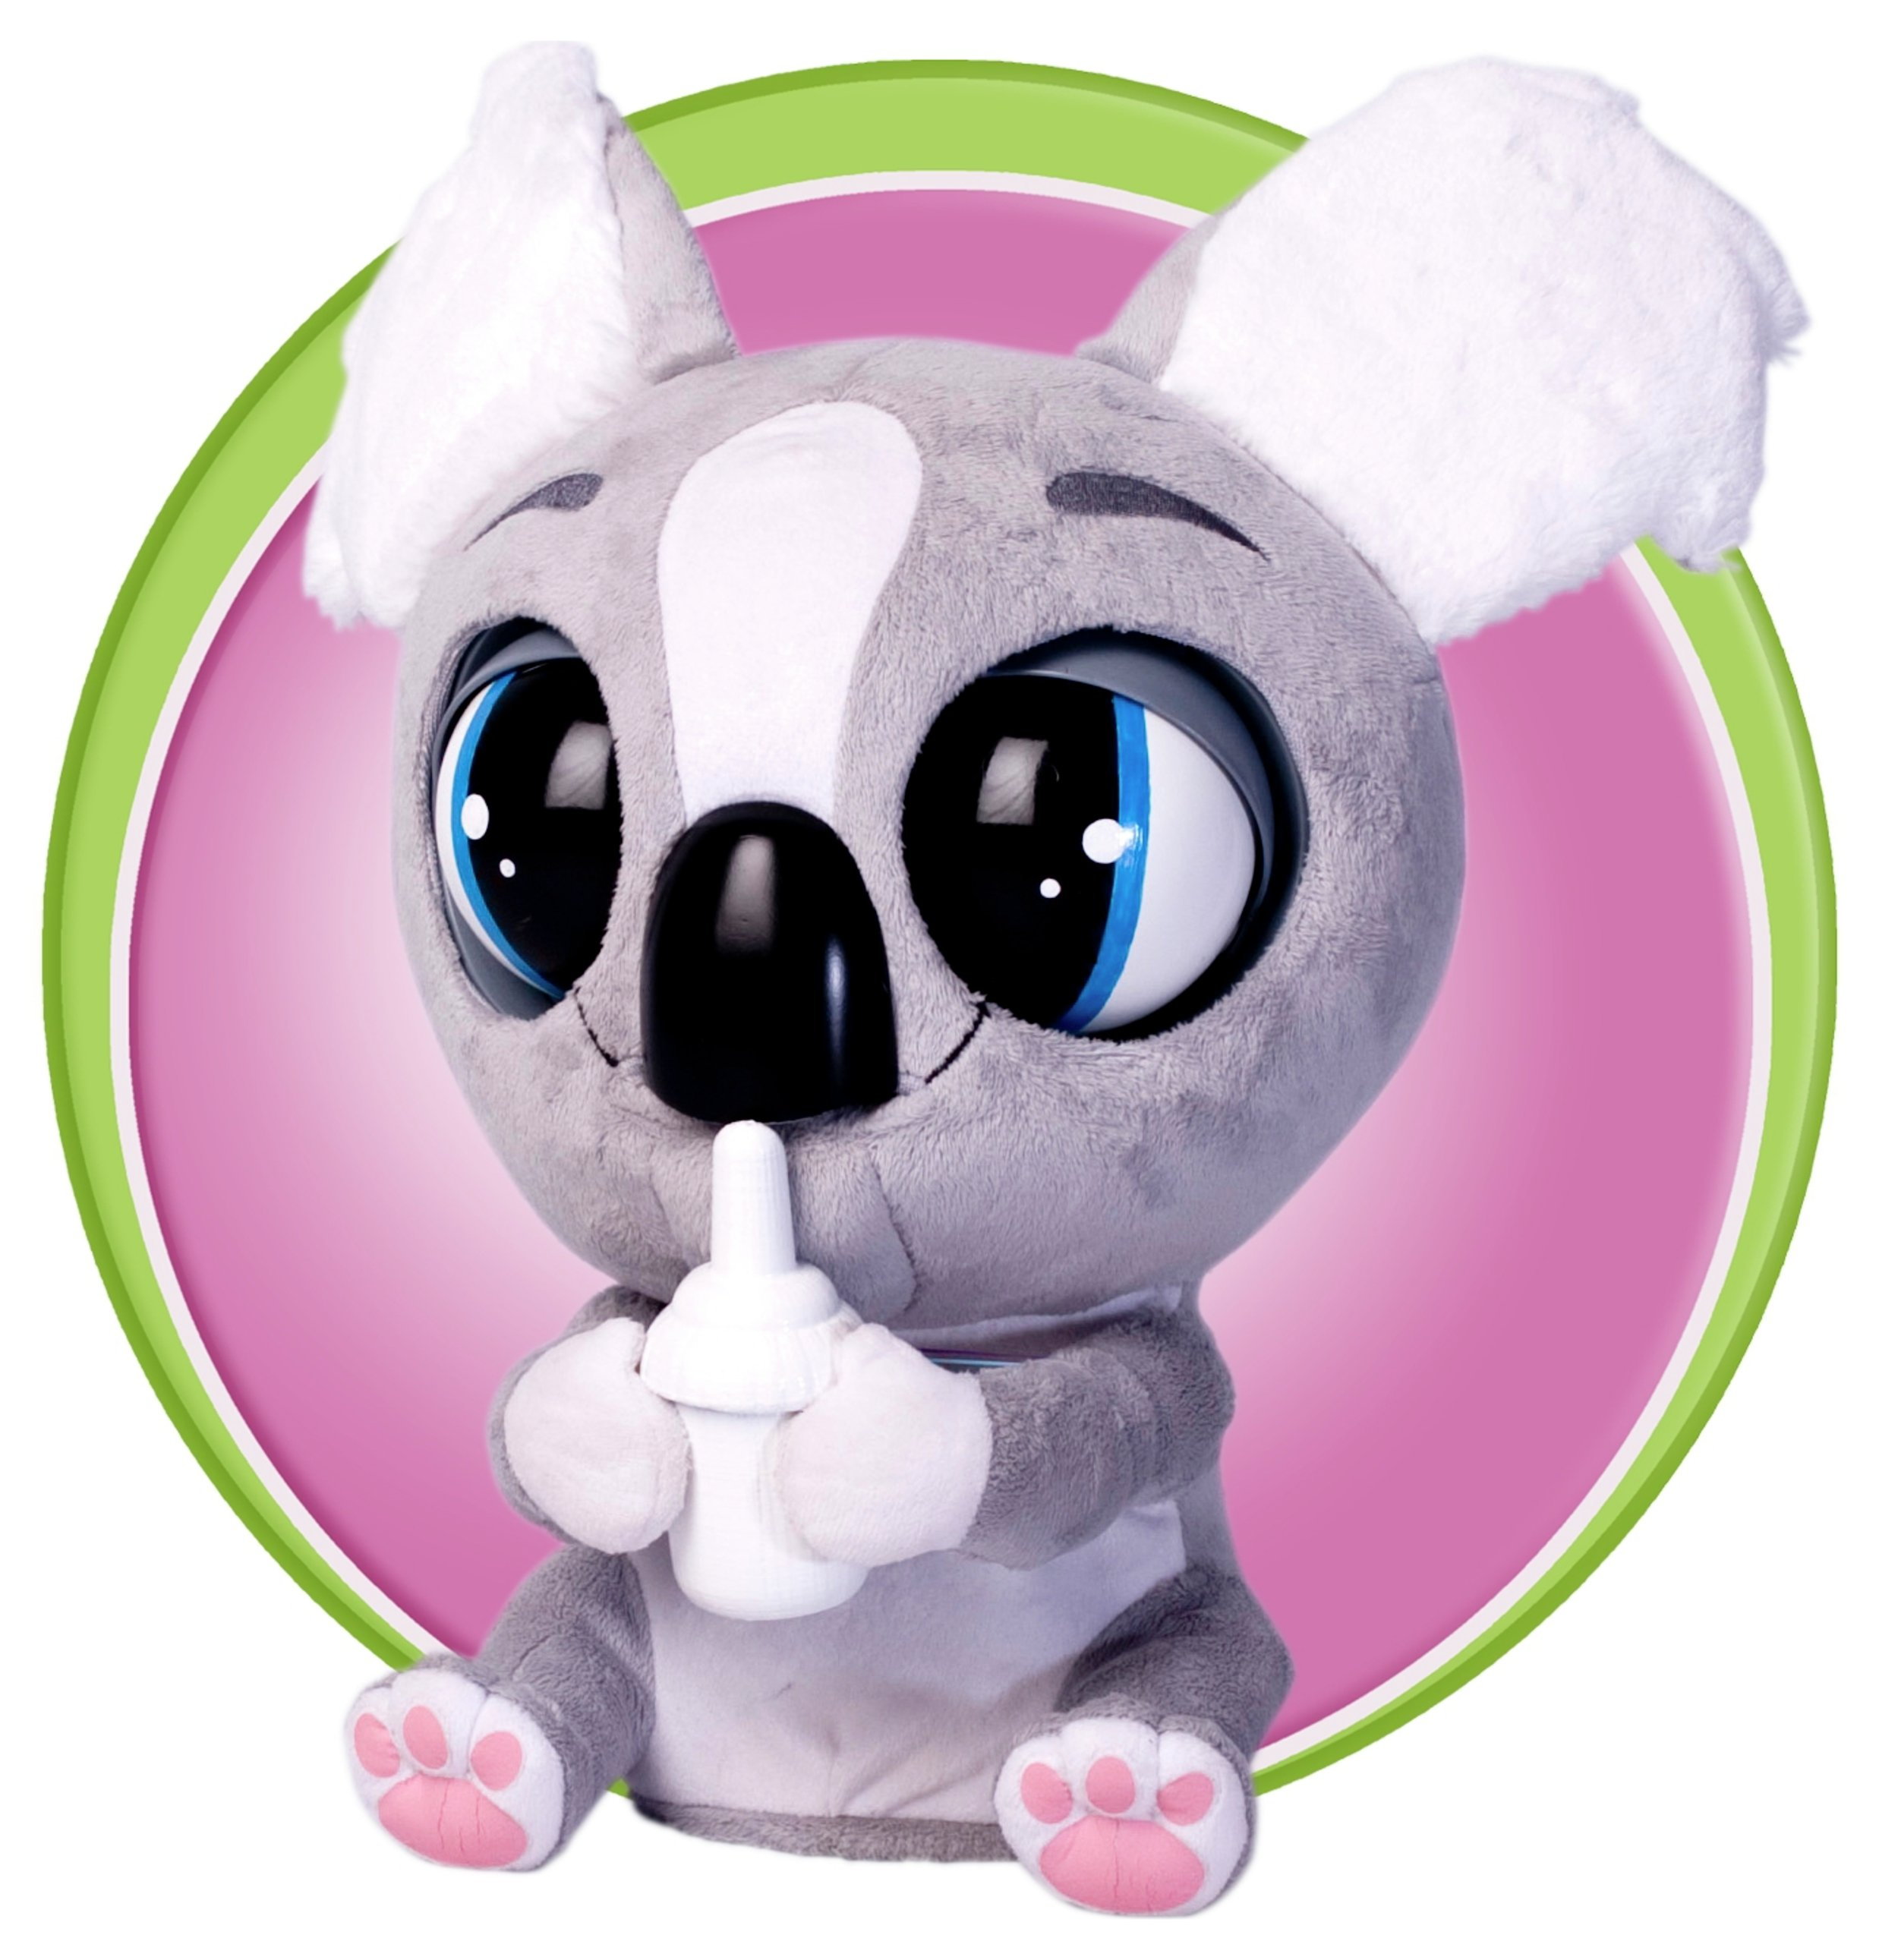 Image of Club Petz Kao Kao The Koala.